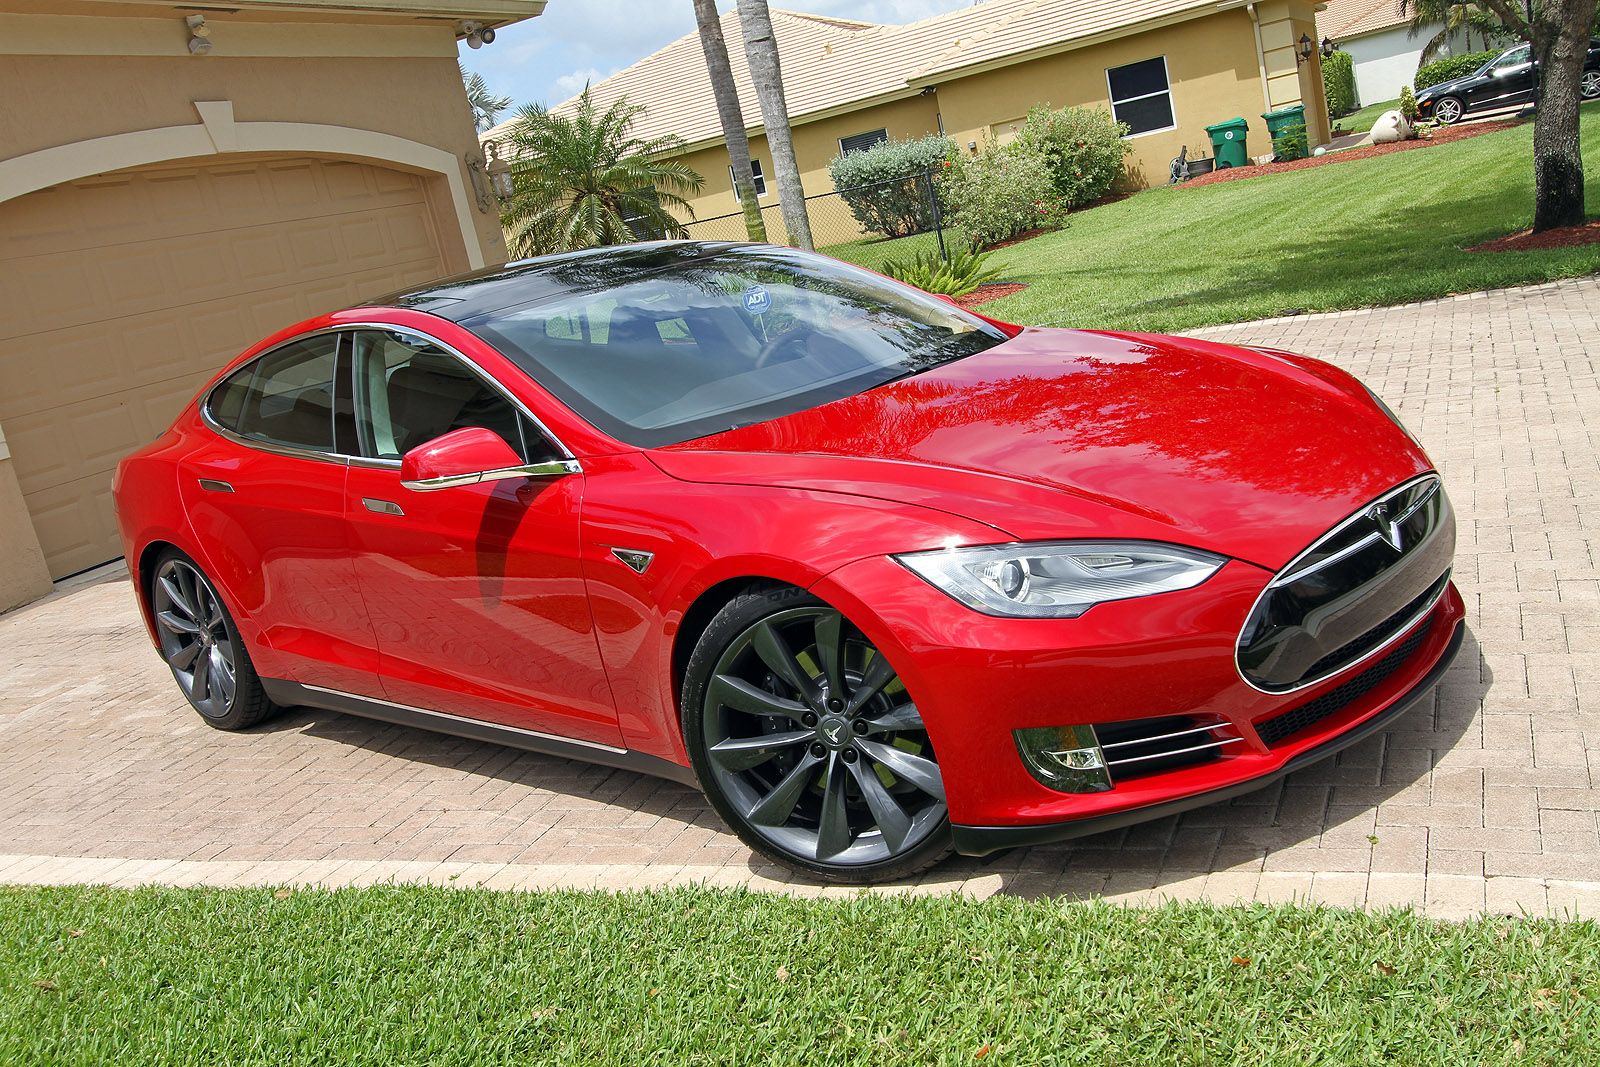 2013-tesla-model-s-p85-multi-coat-red-007.jpg